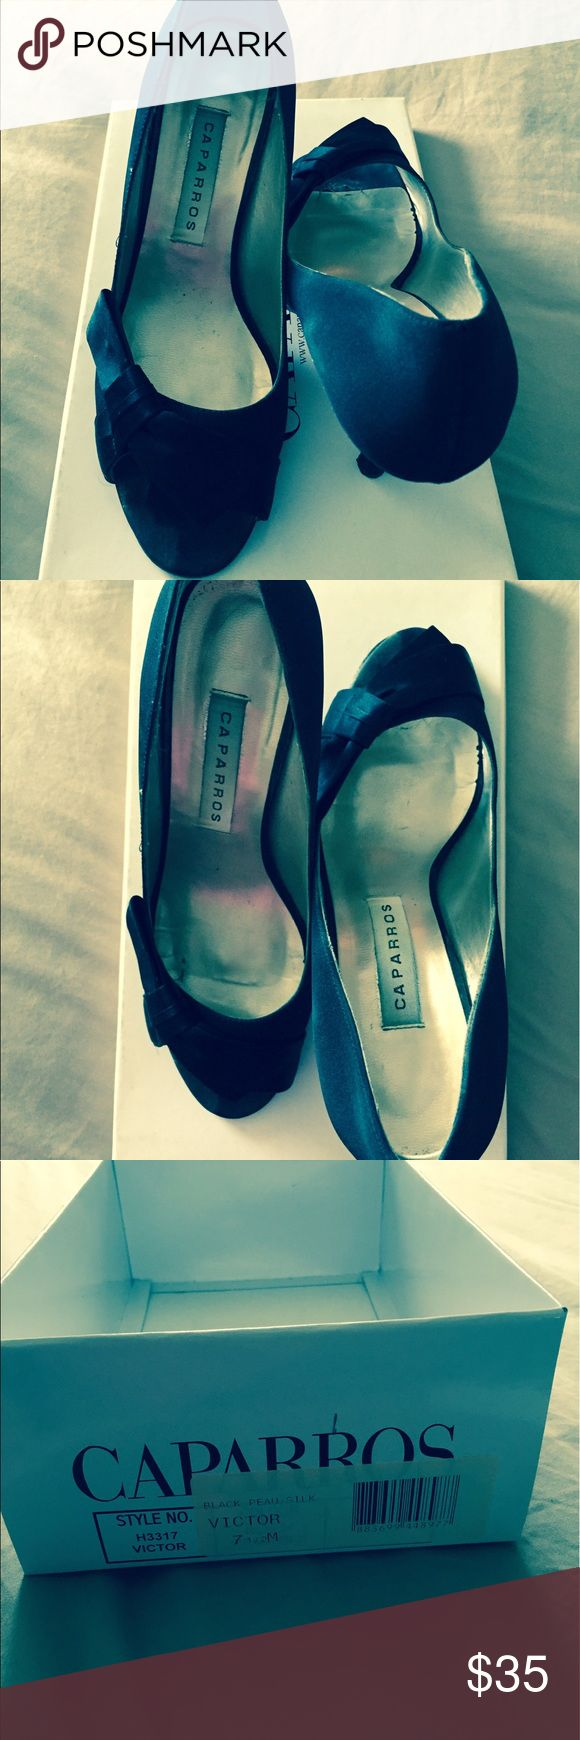 Caparros shoes Black satin shoes. Very elegant and classy look. Can be used from daytime for professional use or with evening wear. Worn just a couple times. Caparros Shoes Heels